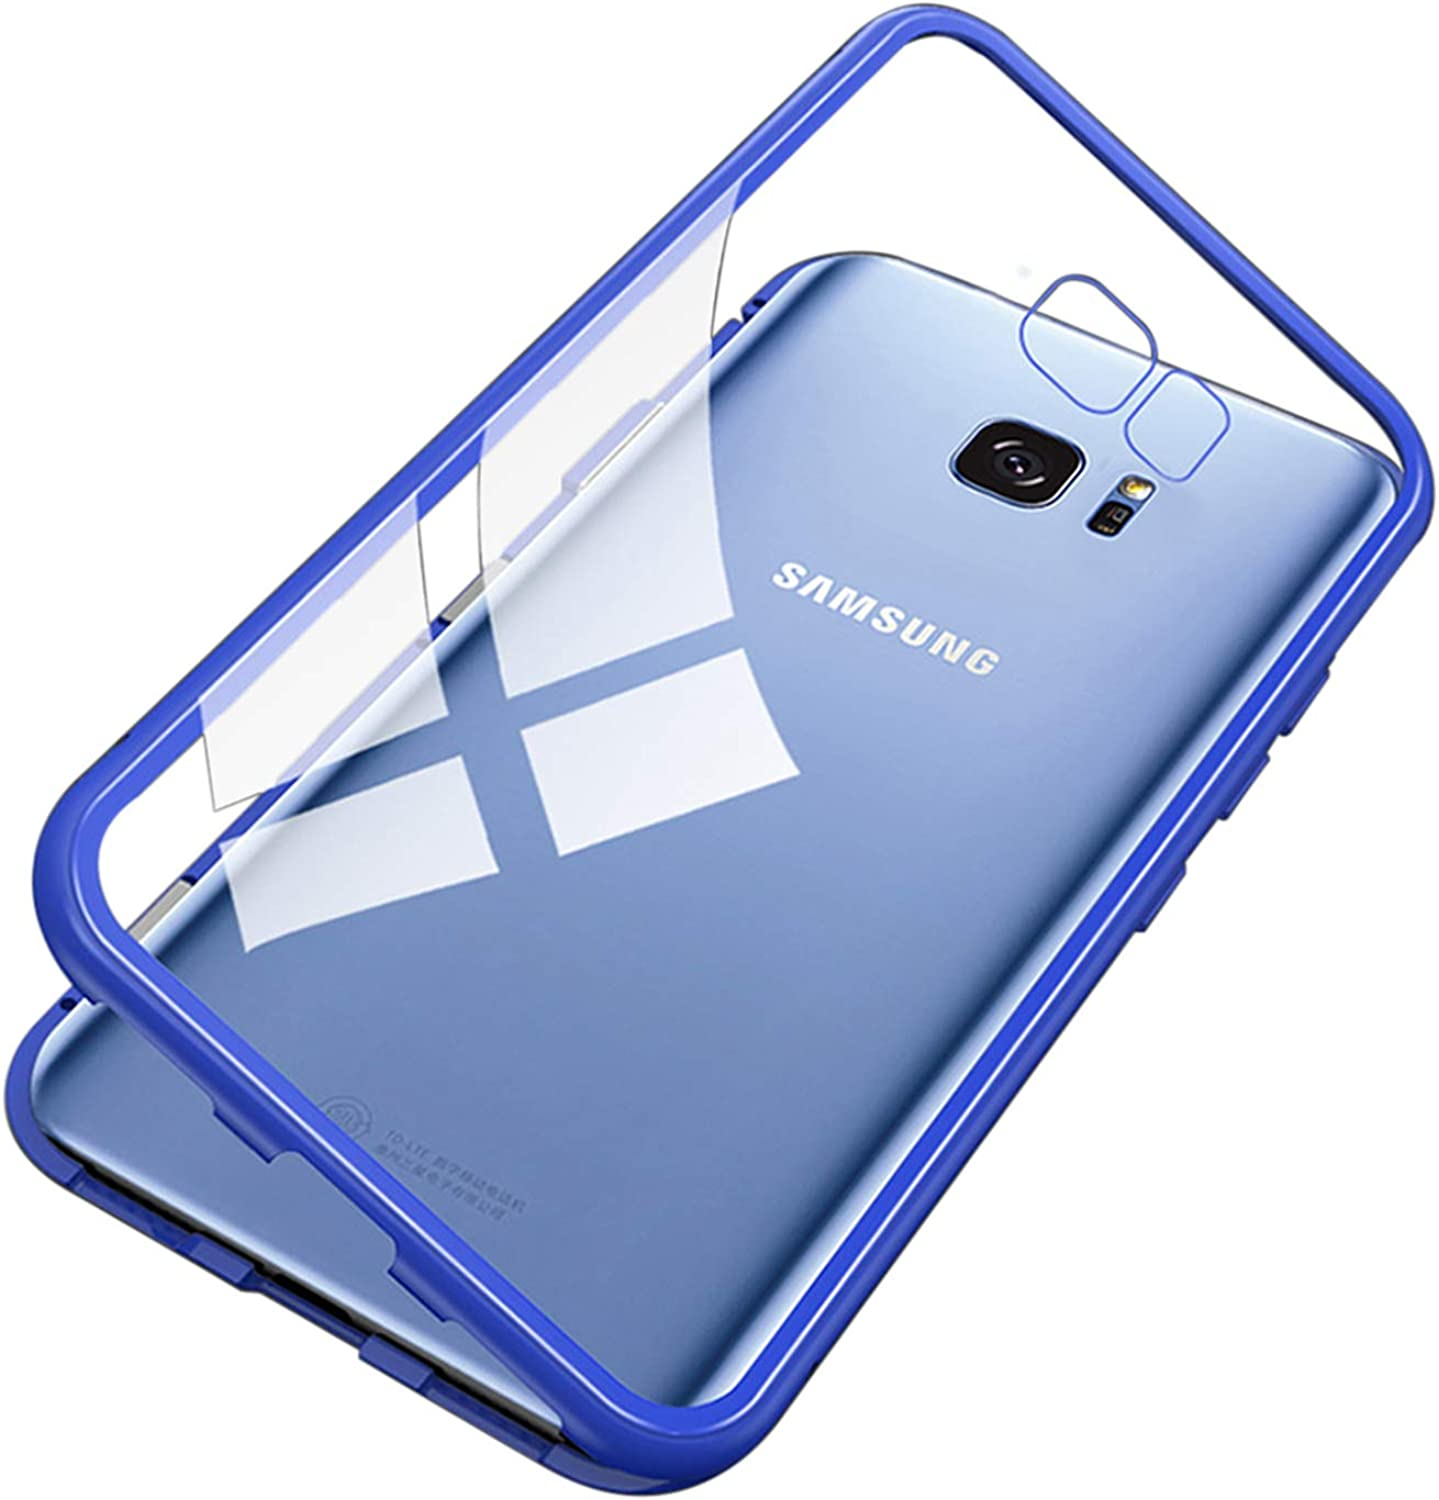 UNIYA Galaxy S7 Edge Magnetic Case, Tempered Glass Magnetic Metal Frame Aluminum Alloy Protective Case